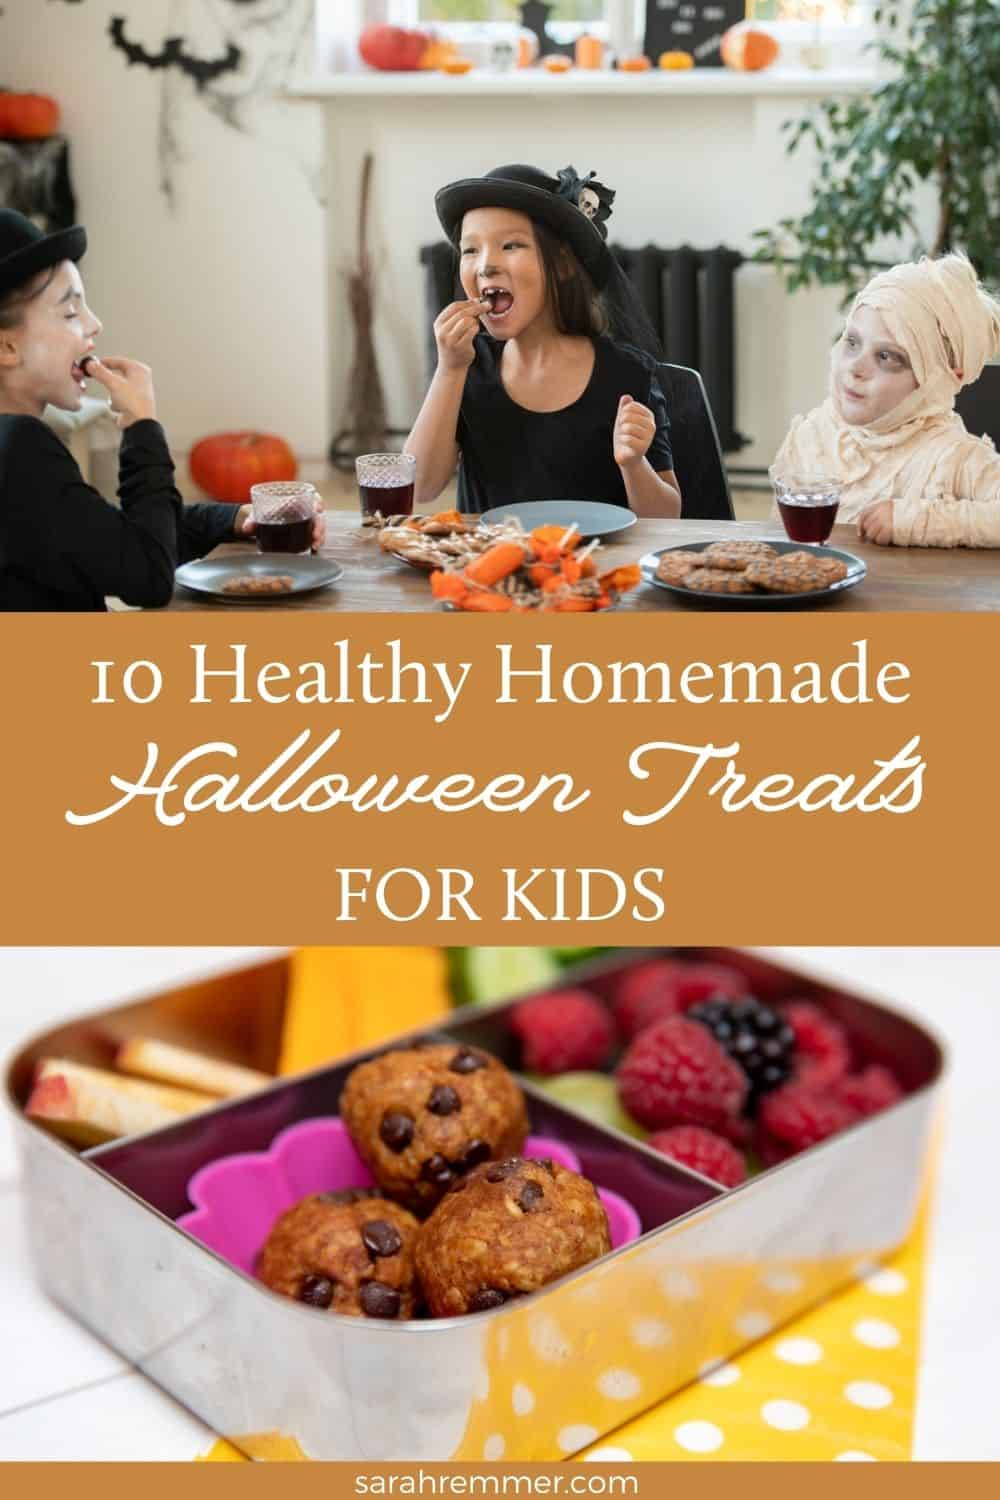 Halloween is just around the corner! Make these healthy homemade Halloween treats with your kids.